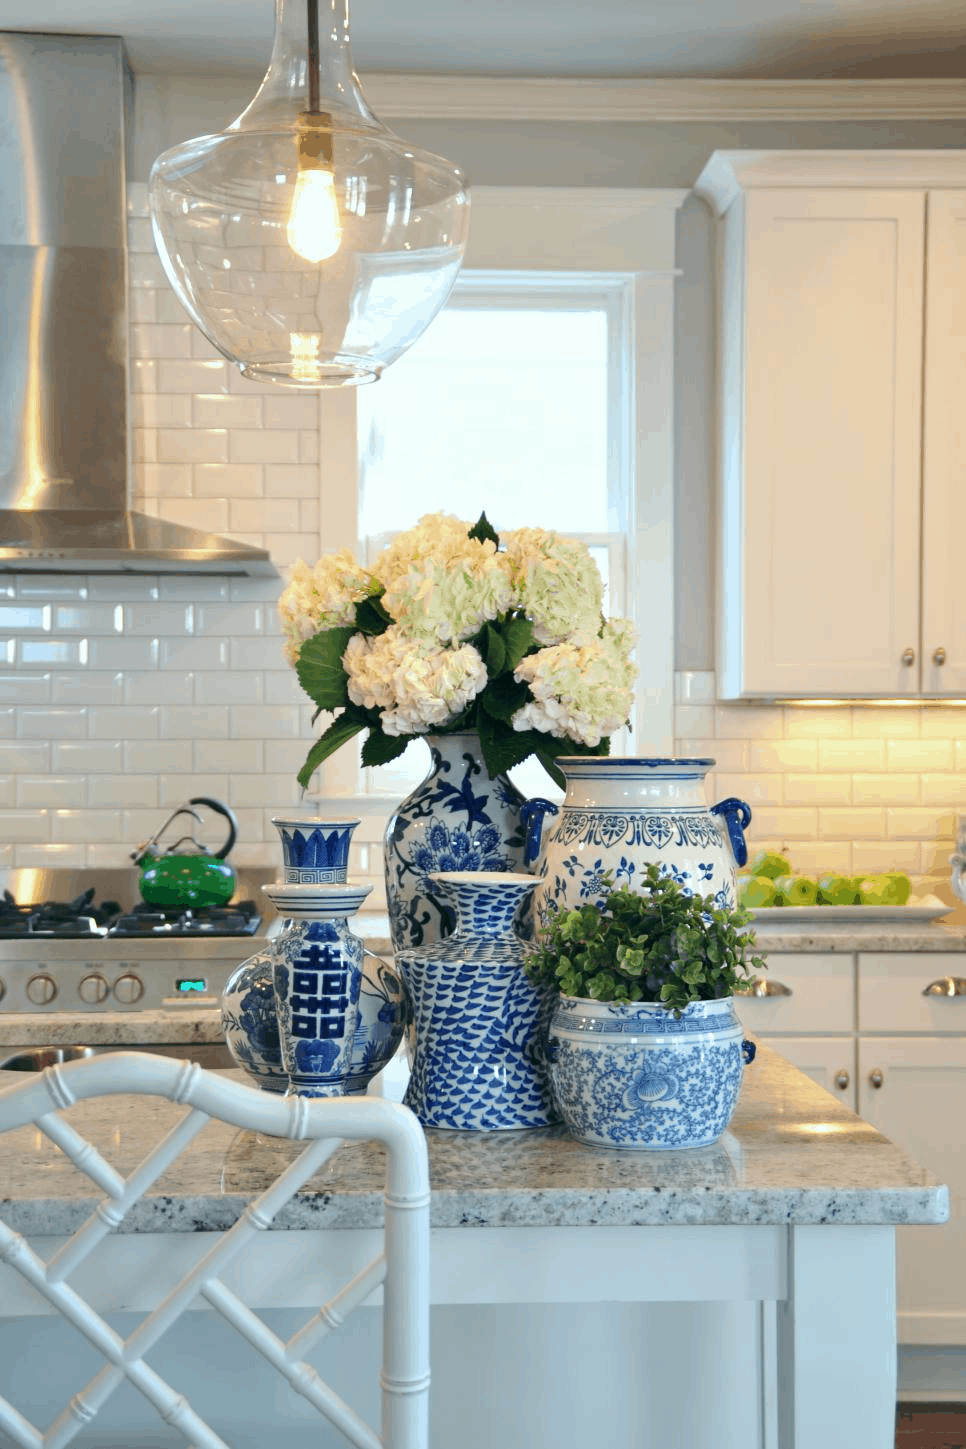 The Best Blue and White Decorating Ideas